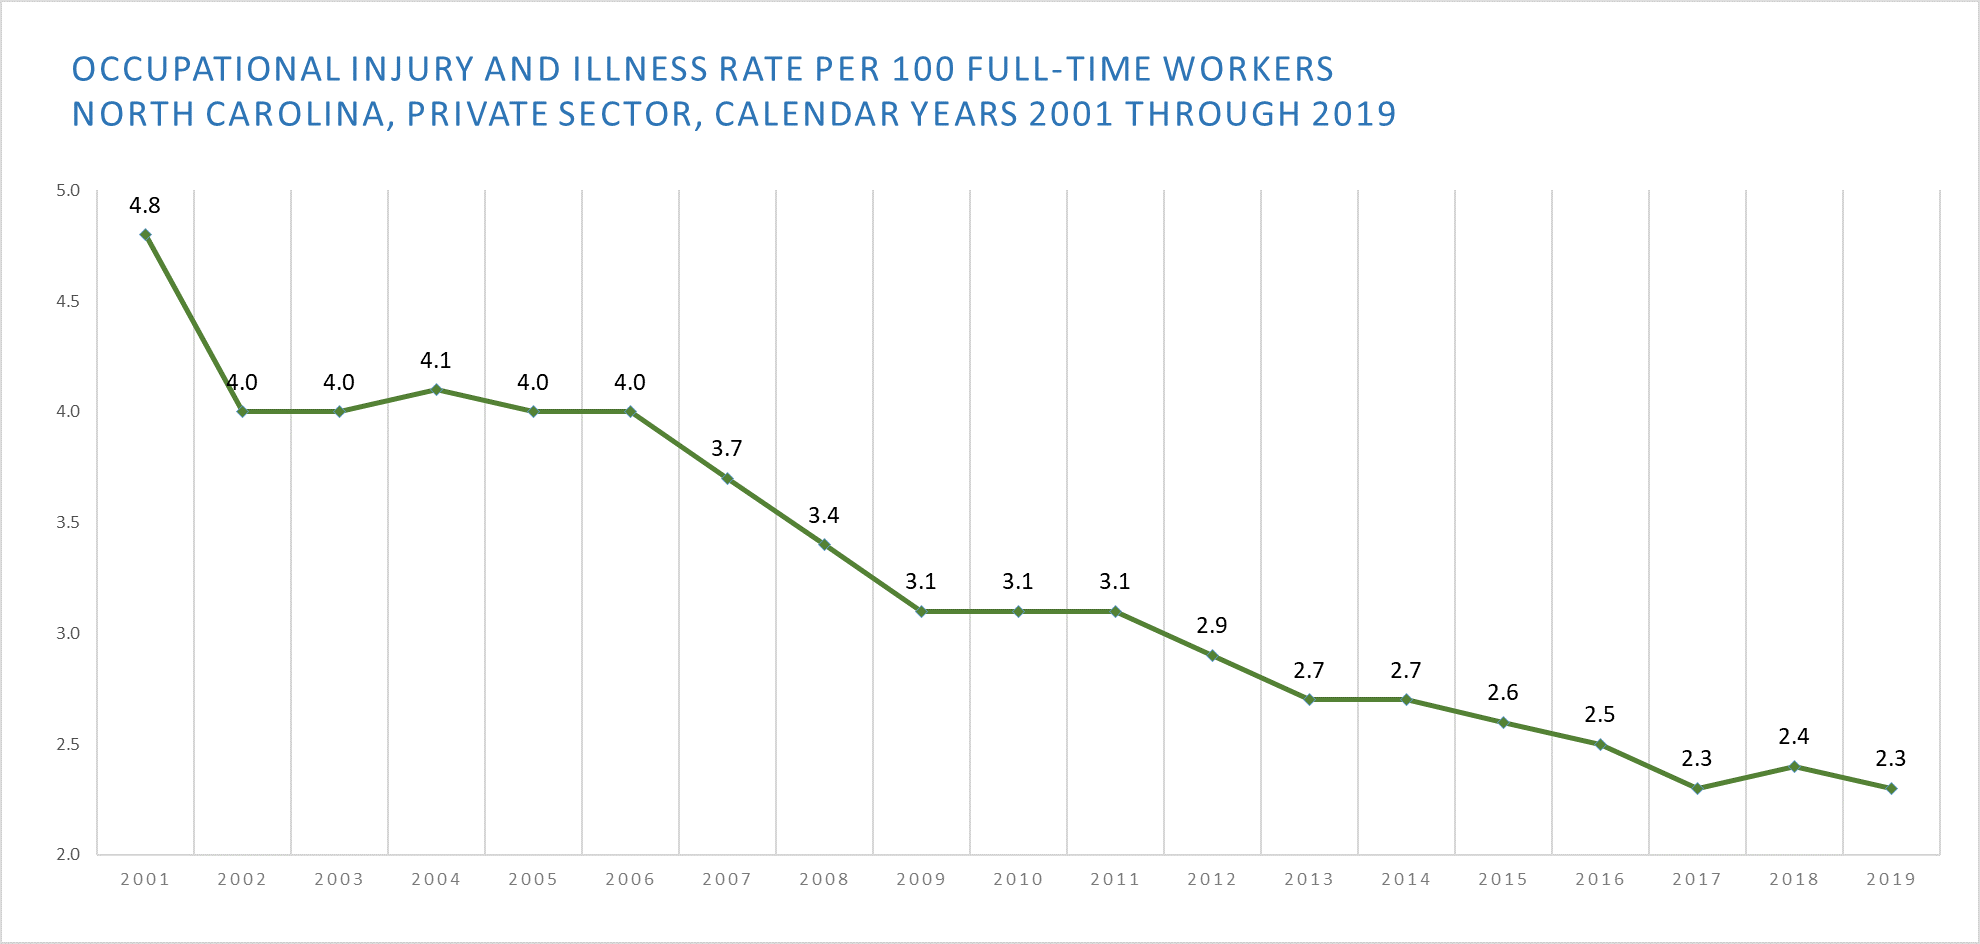 A graph shows a steady decline of the Occupational Injury and Illness Rate Per 100 Full-Time Workers in North Carolina, Private Sector, Calendar Years 2001 through 2019.